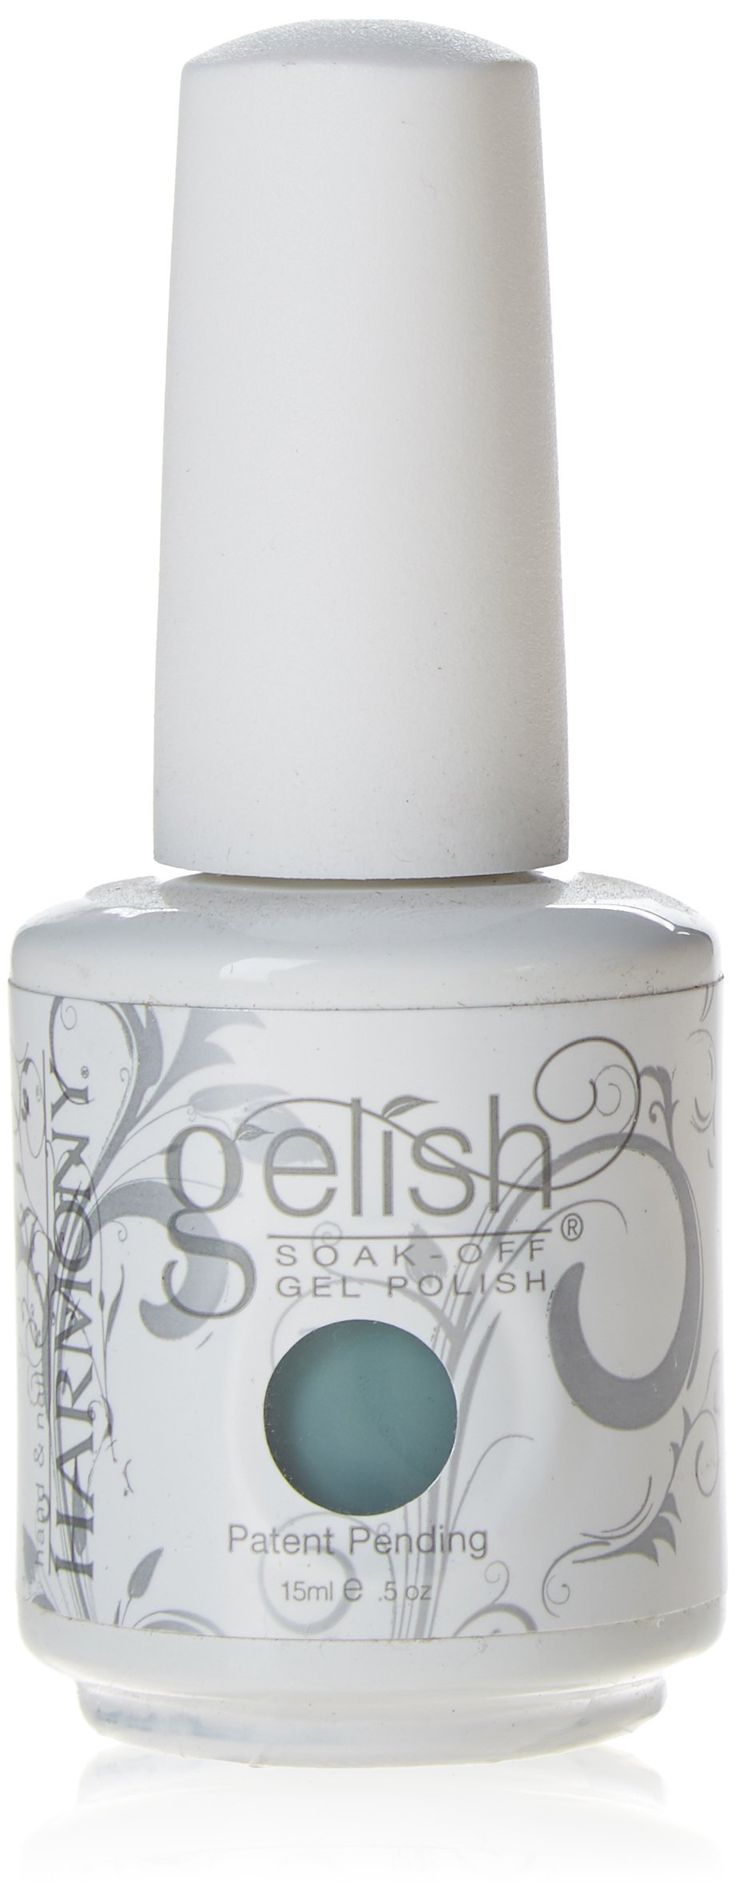 Gelish Soak Off Gel Nail Polish, Sea Foam, 0.5 Ounce. No chipping or peeling, and soaks completely off in only 10-15 minutes. Applies like polish and cures in a led lamp in 30 seconds. Gelish stays on nails for up to 3 weeks.